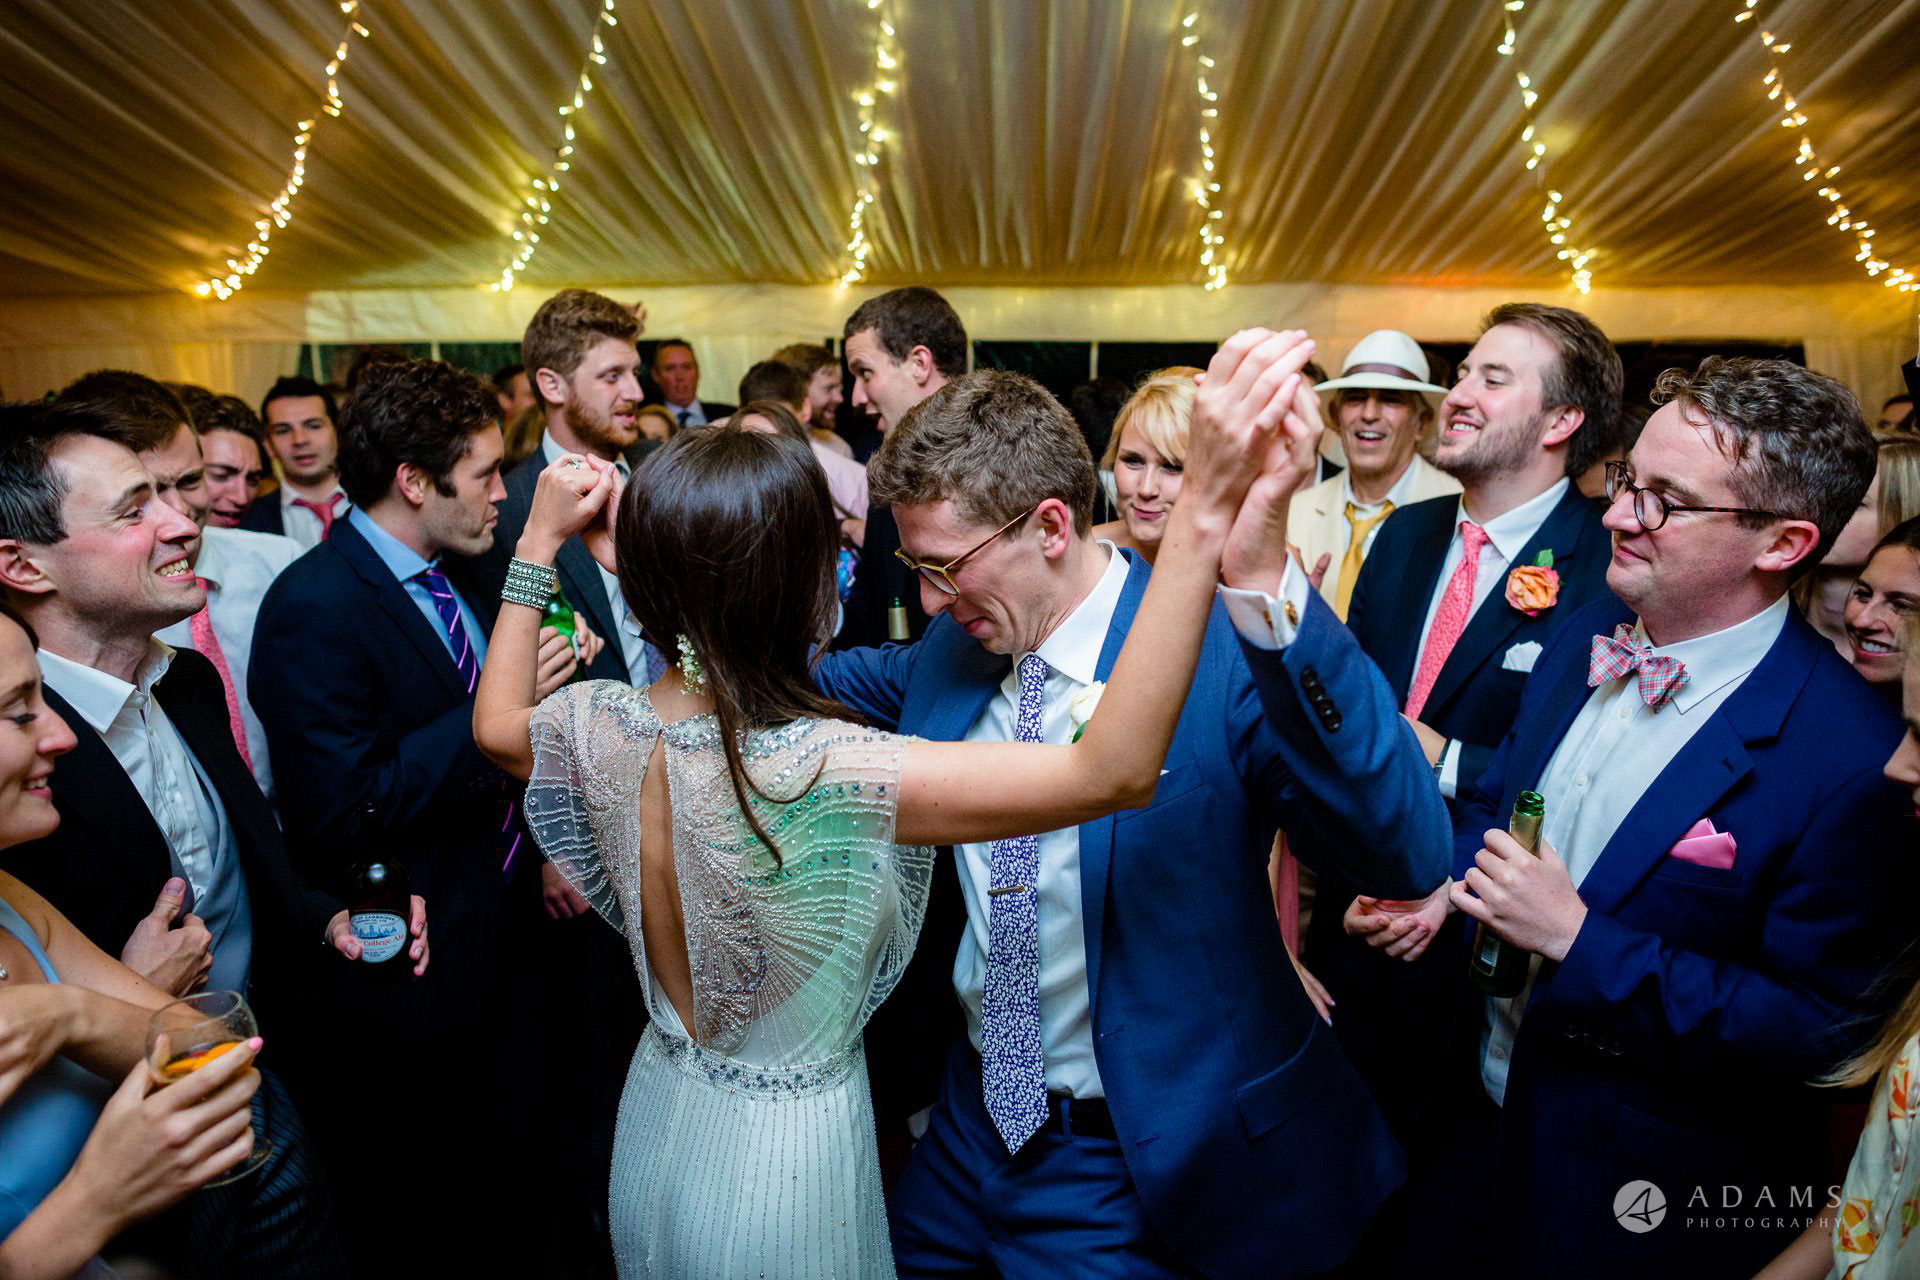 Clare College wedding bride and groom show their dance moves